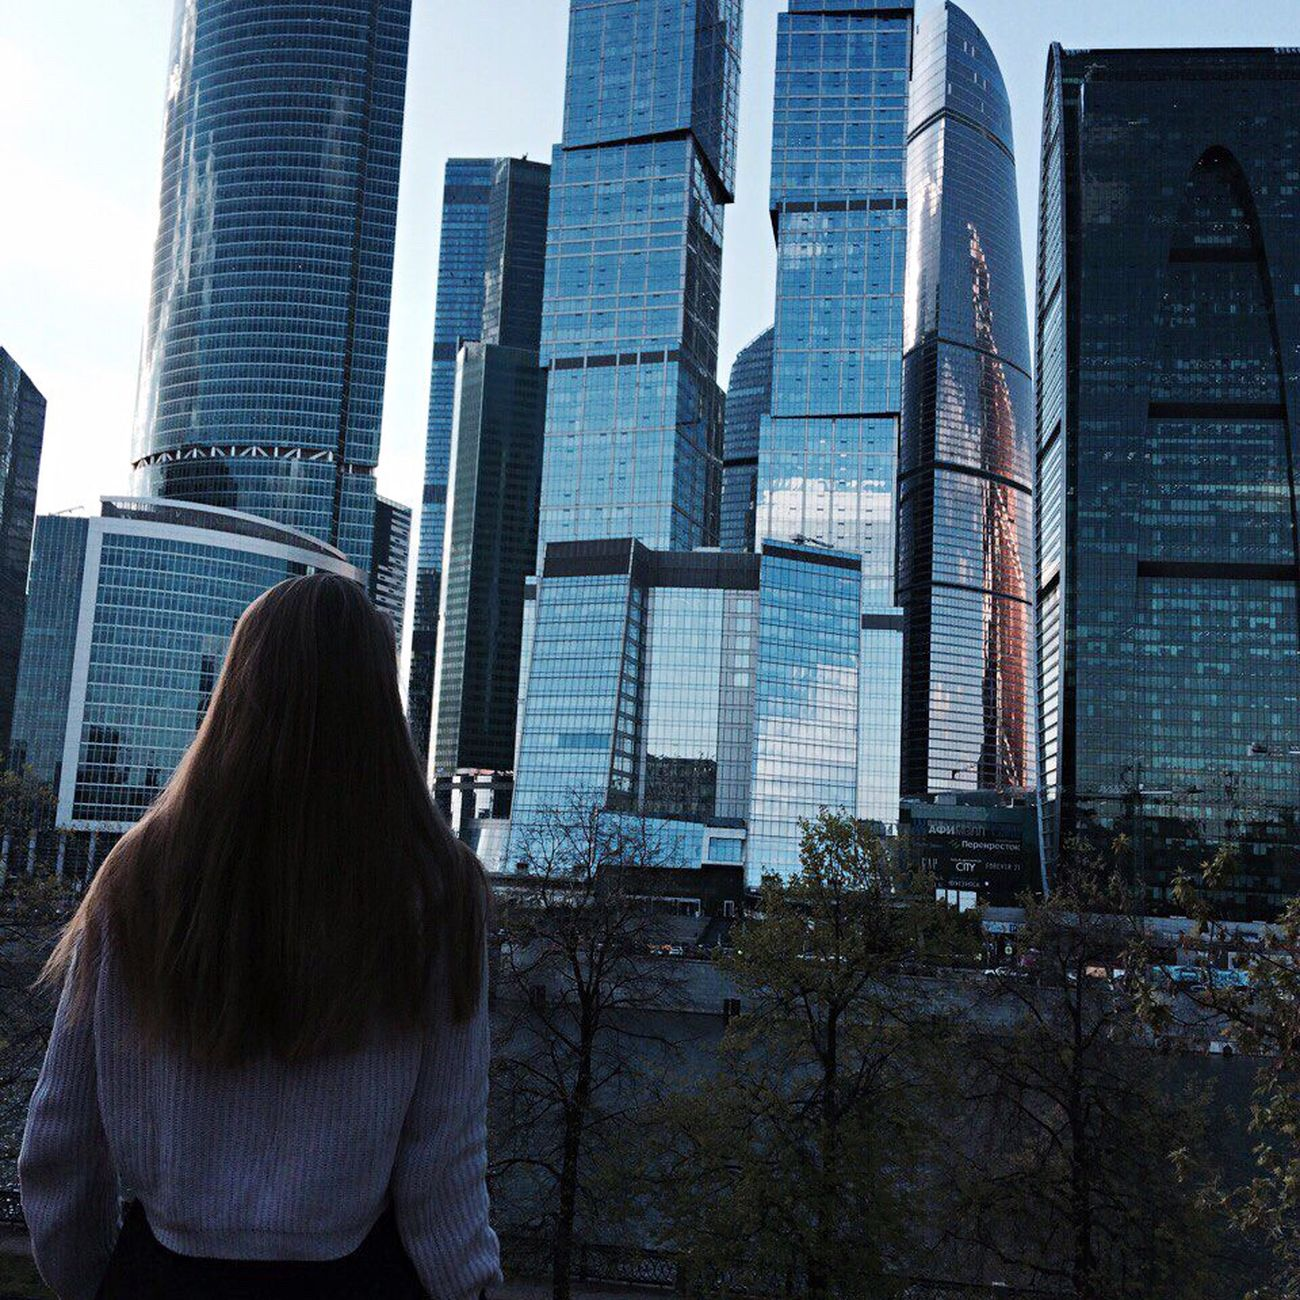 Moskow City Moscow Russia Beautiful Nature City Loveis Russian Girl Beautiful Happy Blond Hair Goodday Long Hair 😍😌😊 Popular Photos Popular Pretty Girl Hello World ❤❤❤ Office Park Skyscraper Architecture Rear View Built Structure Building Exterior One Person Financial District  Modern Day Downtown District Women Real People Urban Skyline Outdoors Cityscape Corporate Business One Woman Only Adult